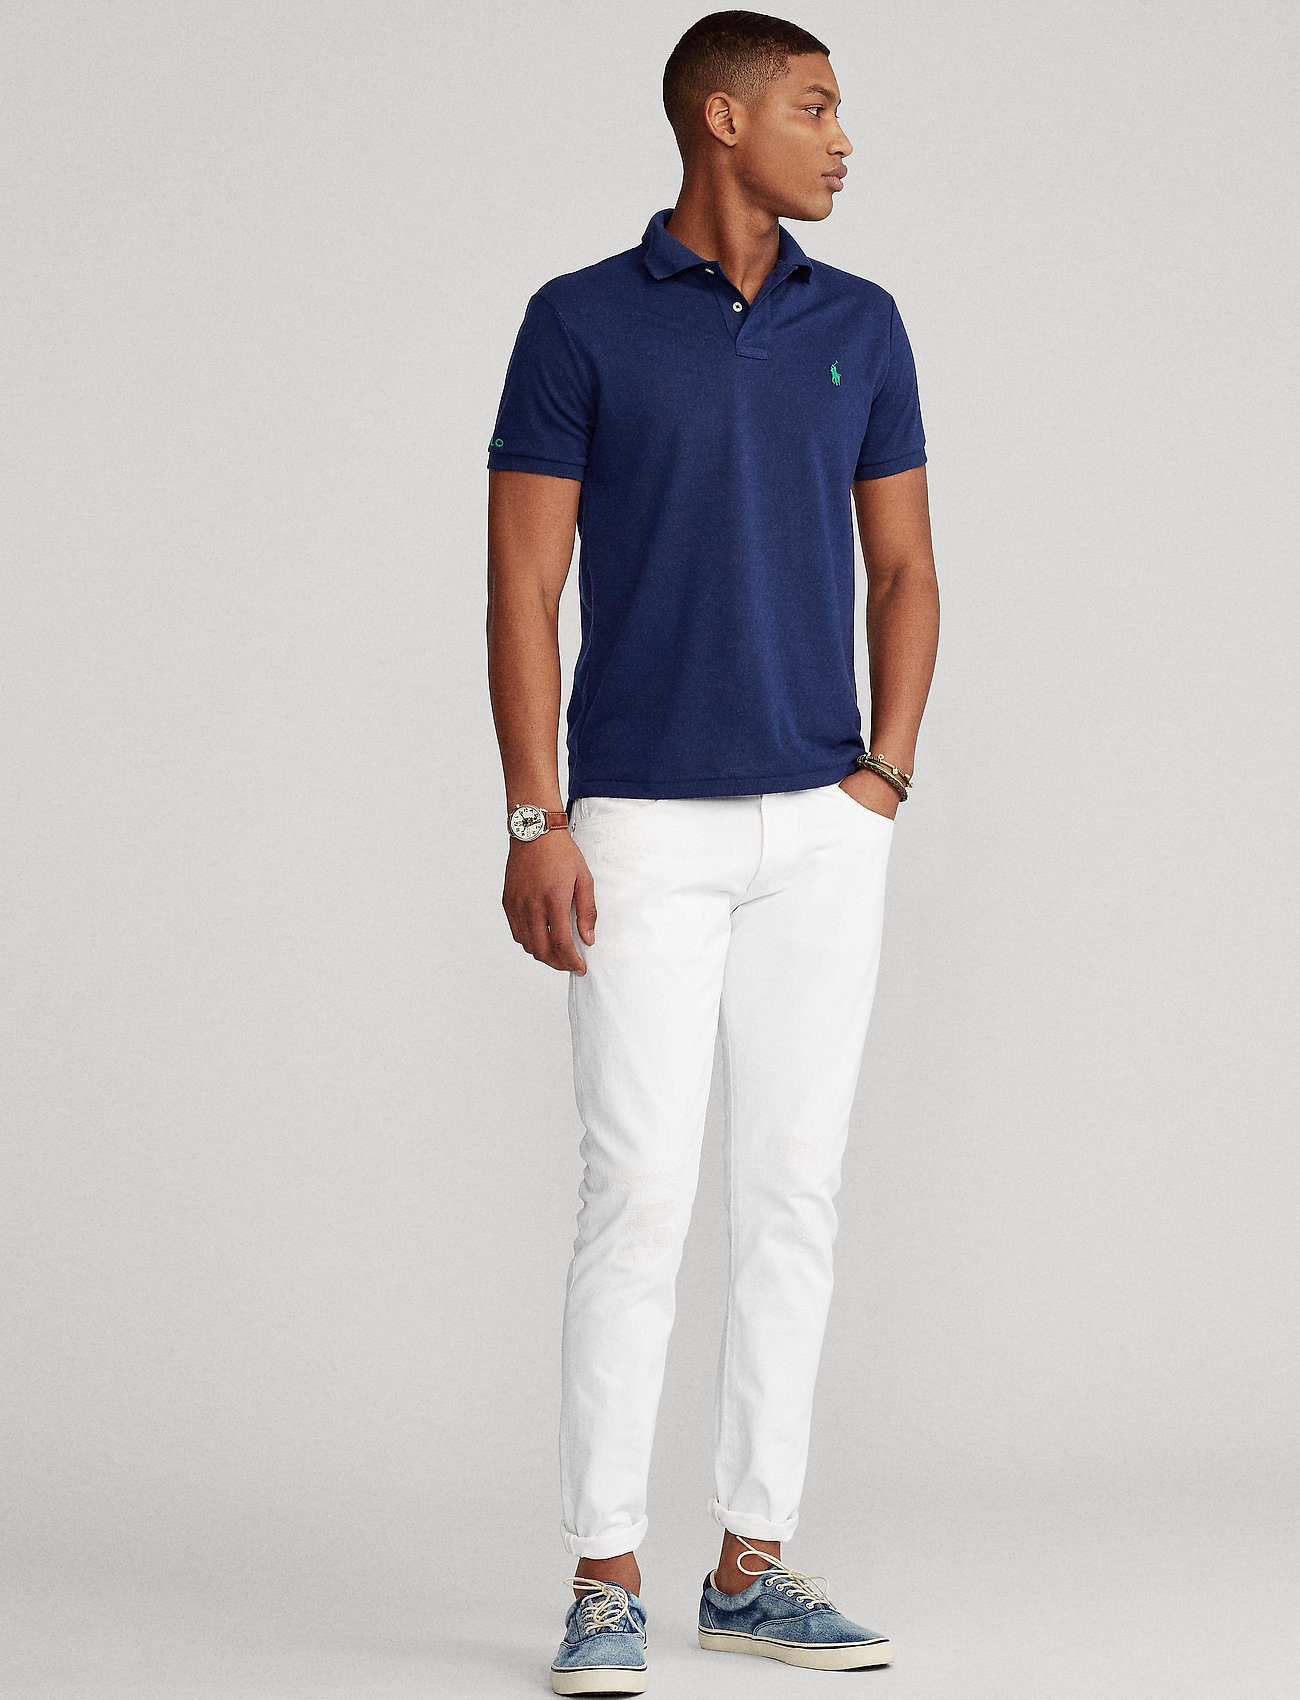 Polo Ralph Lauren - The Earth Polo - kurzärmelig - newport navy - 0